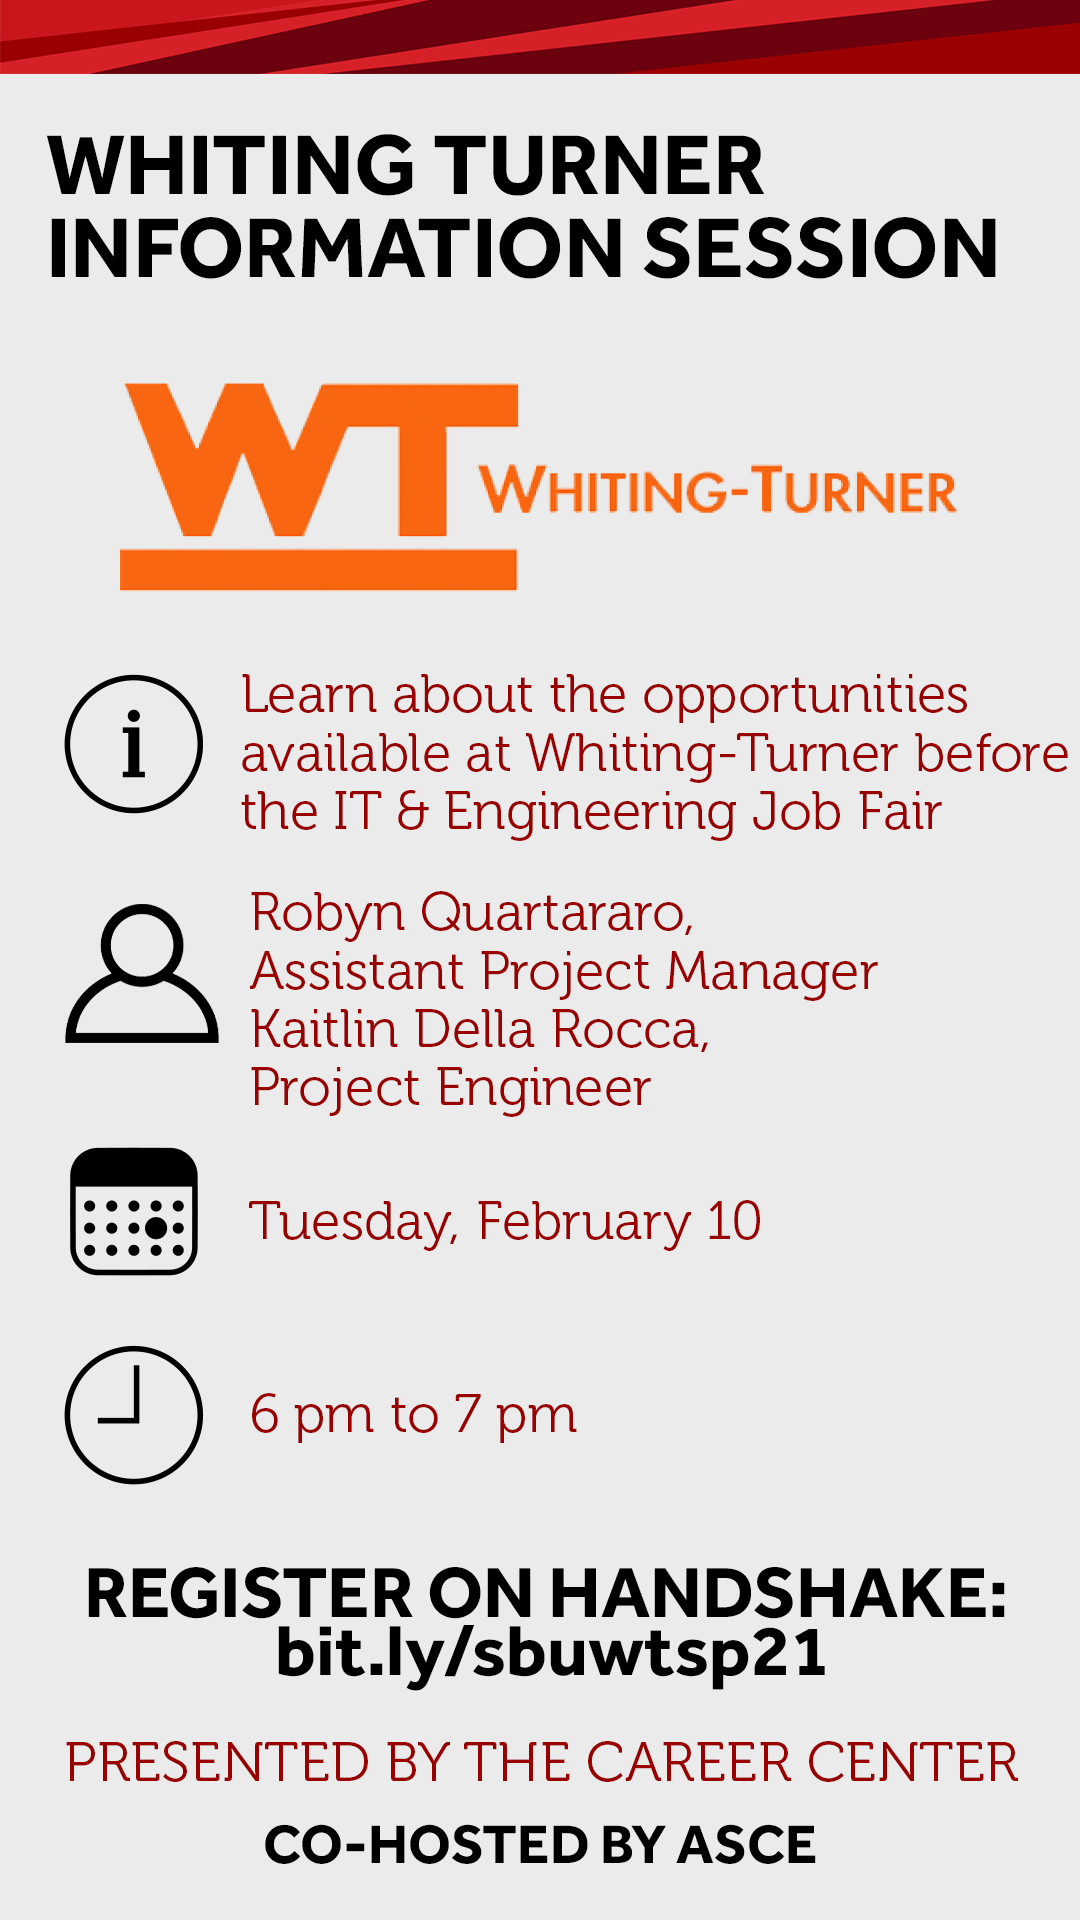 whiting turner flyer